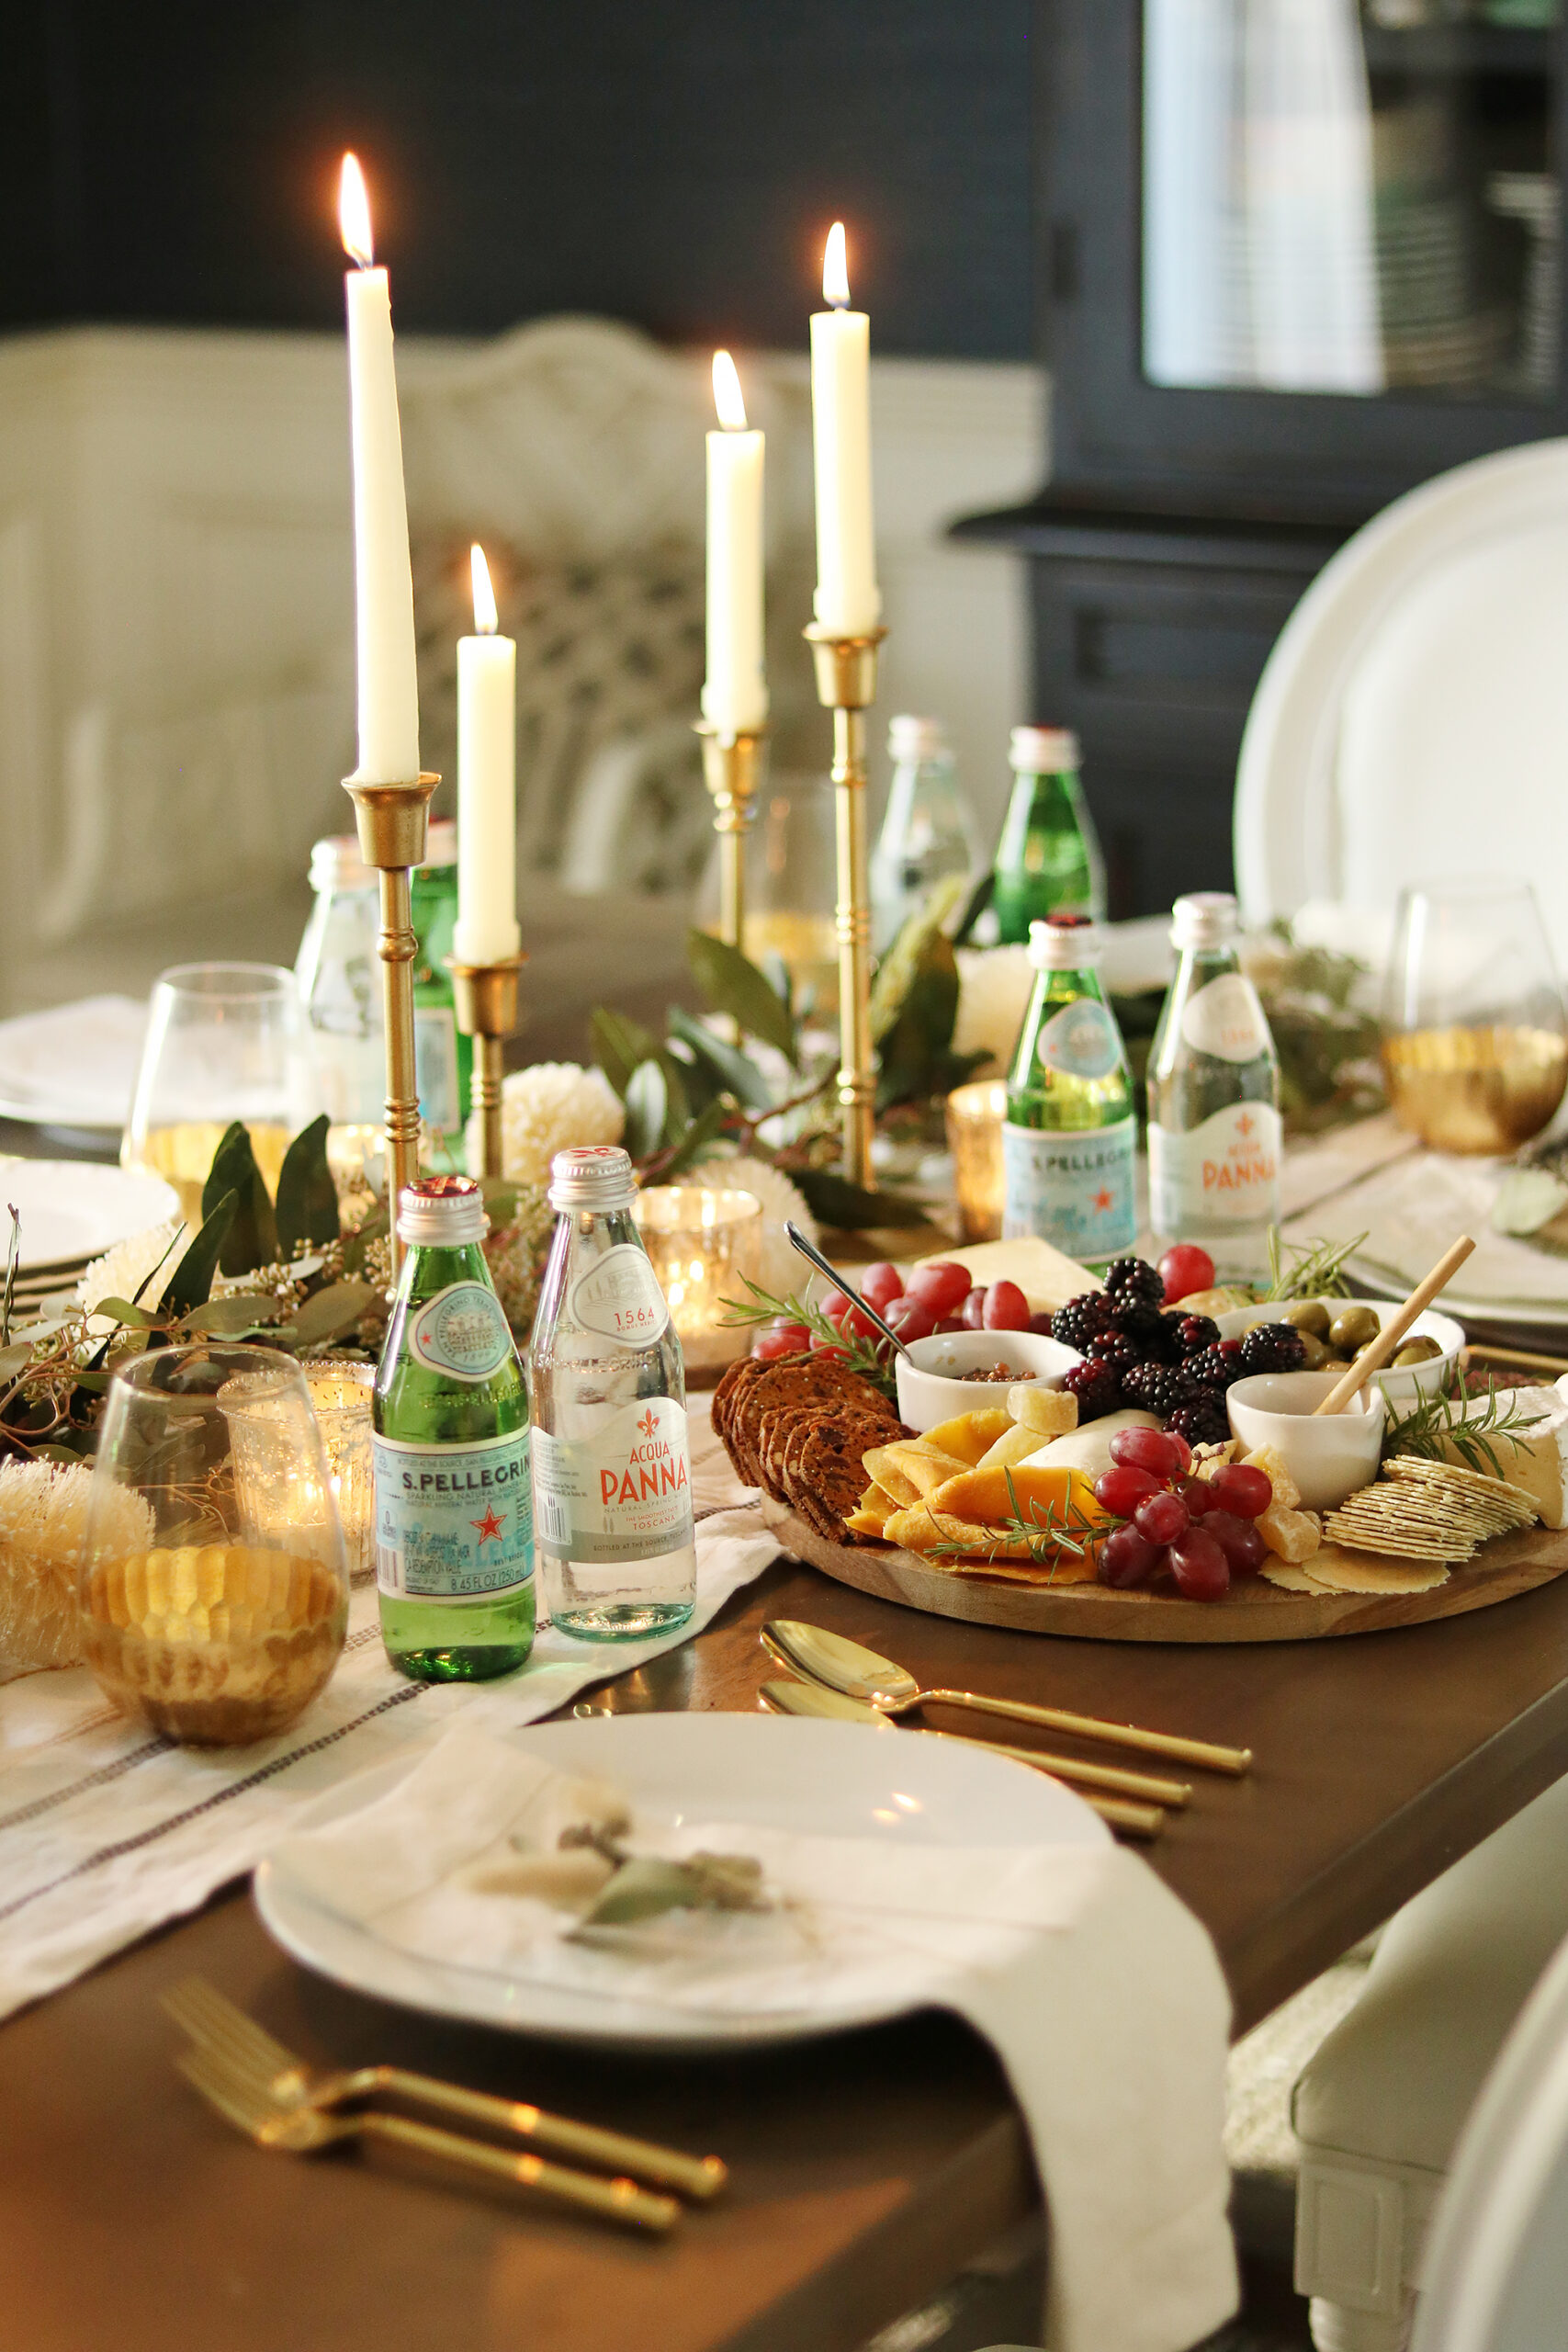 5 Ways to bring the restaurant experience to your home with Acqua Panna and Pellegrino single-serve glass bottles perfect to add the table. || Darling Darleen Top Lifestyle Blogger